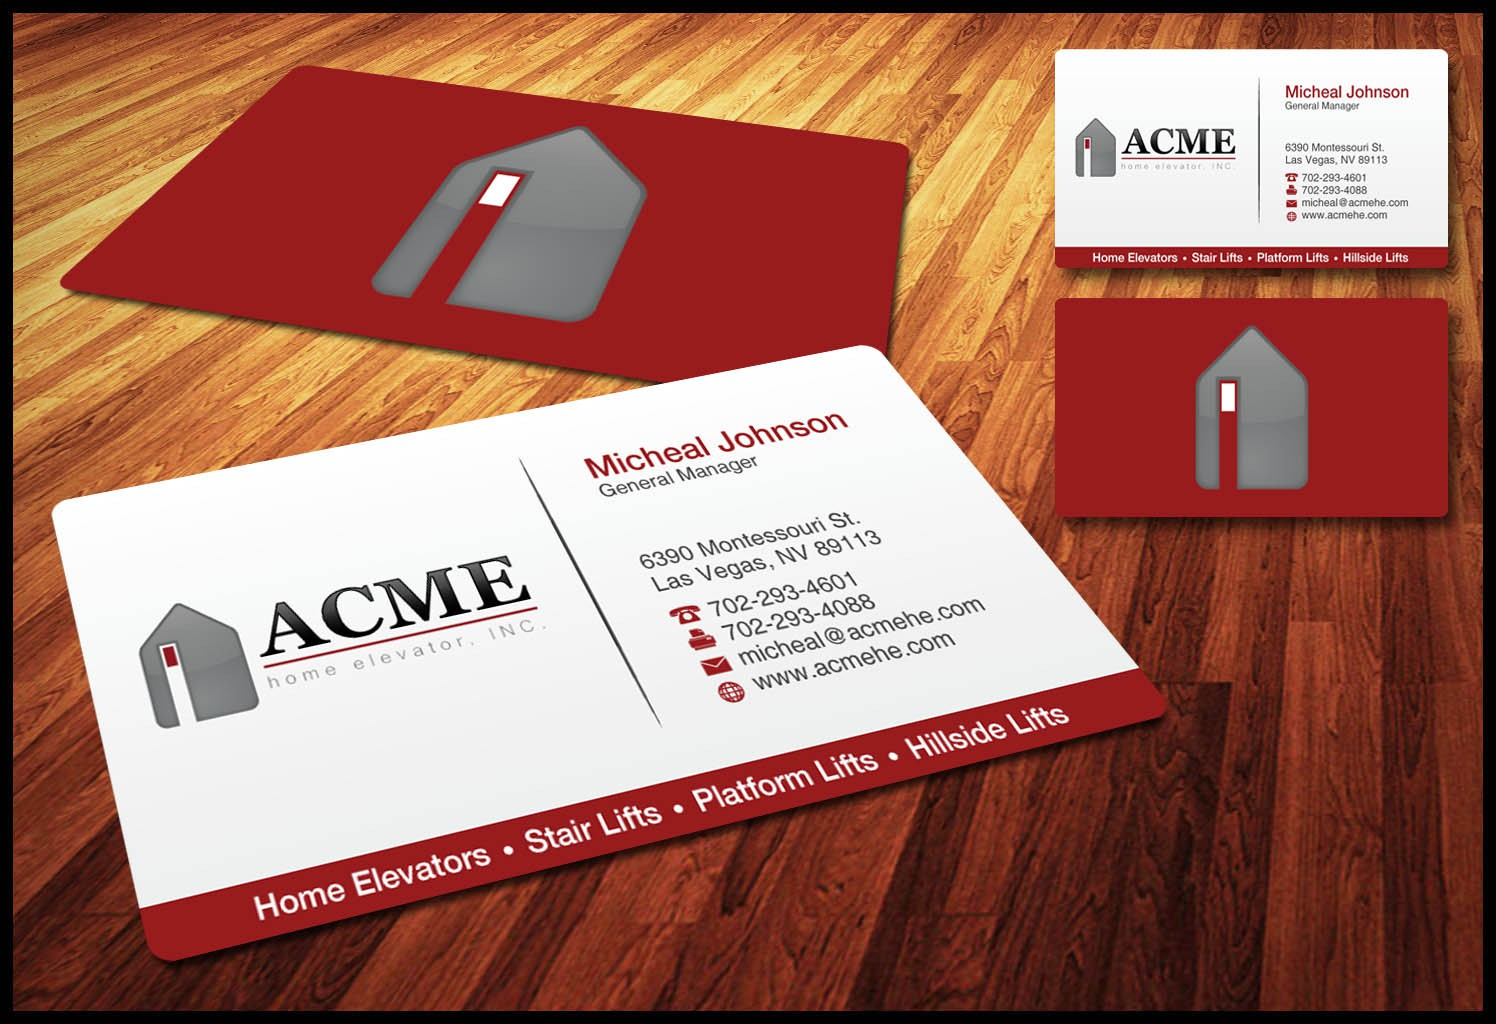 Help ACME Home Elevator with a new business card!